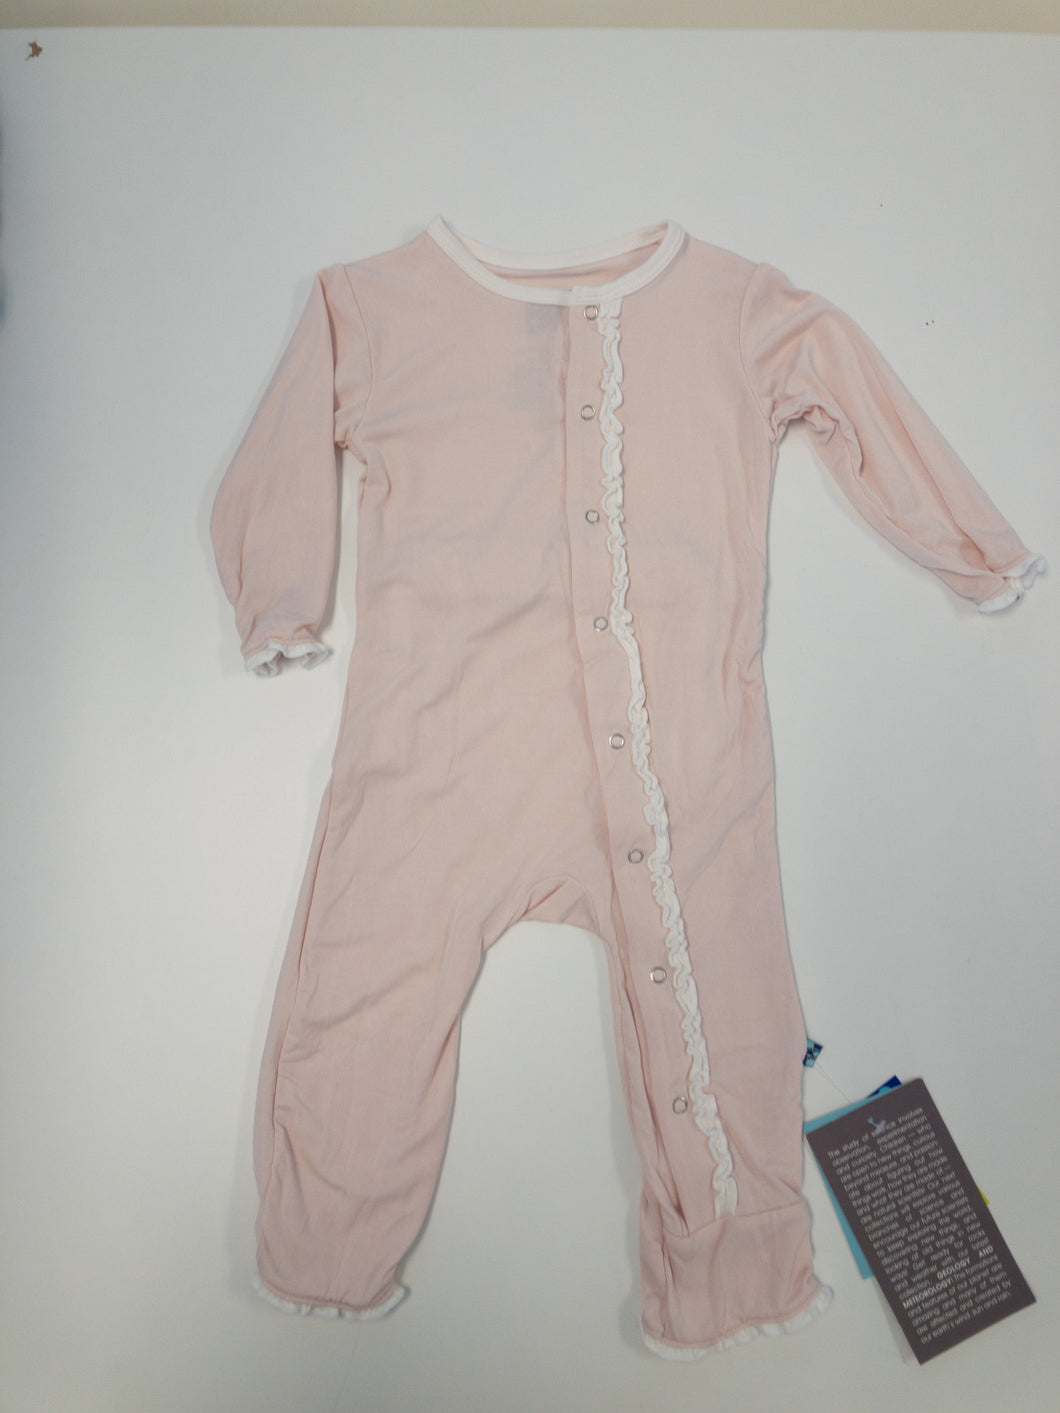 Blush Ruffle Coverall w/Snaps - Posh Tots Children's Boutique